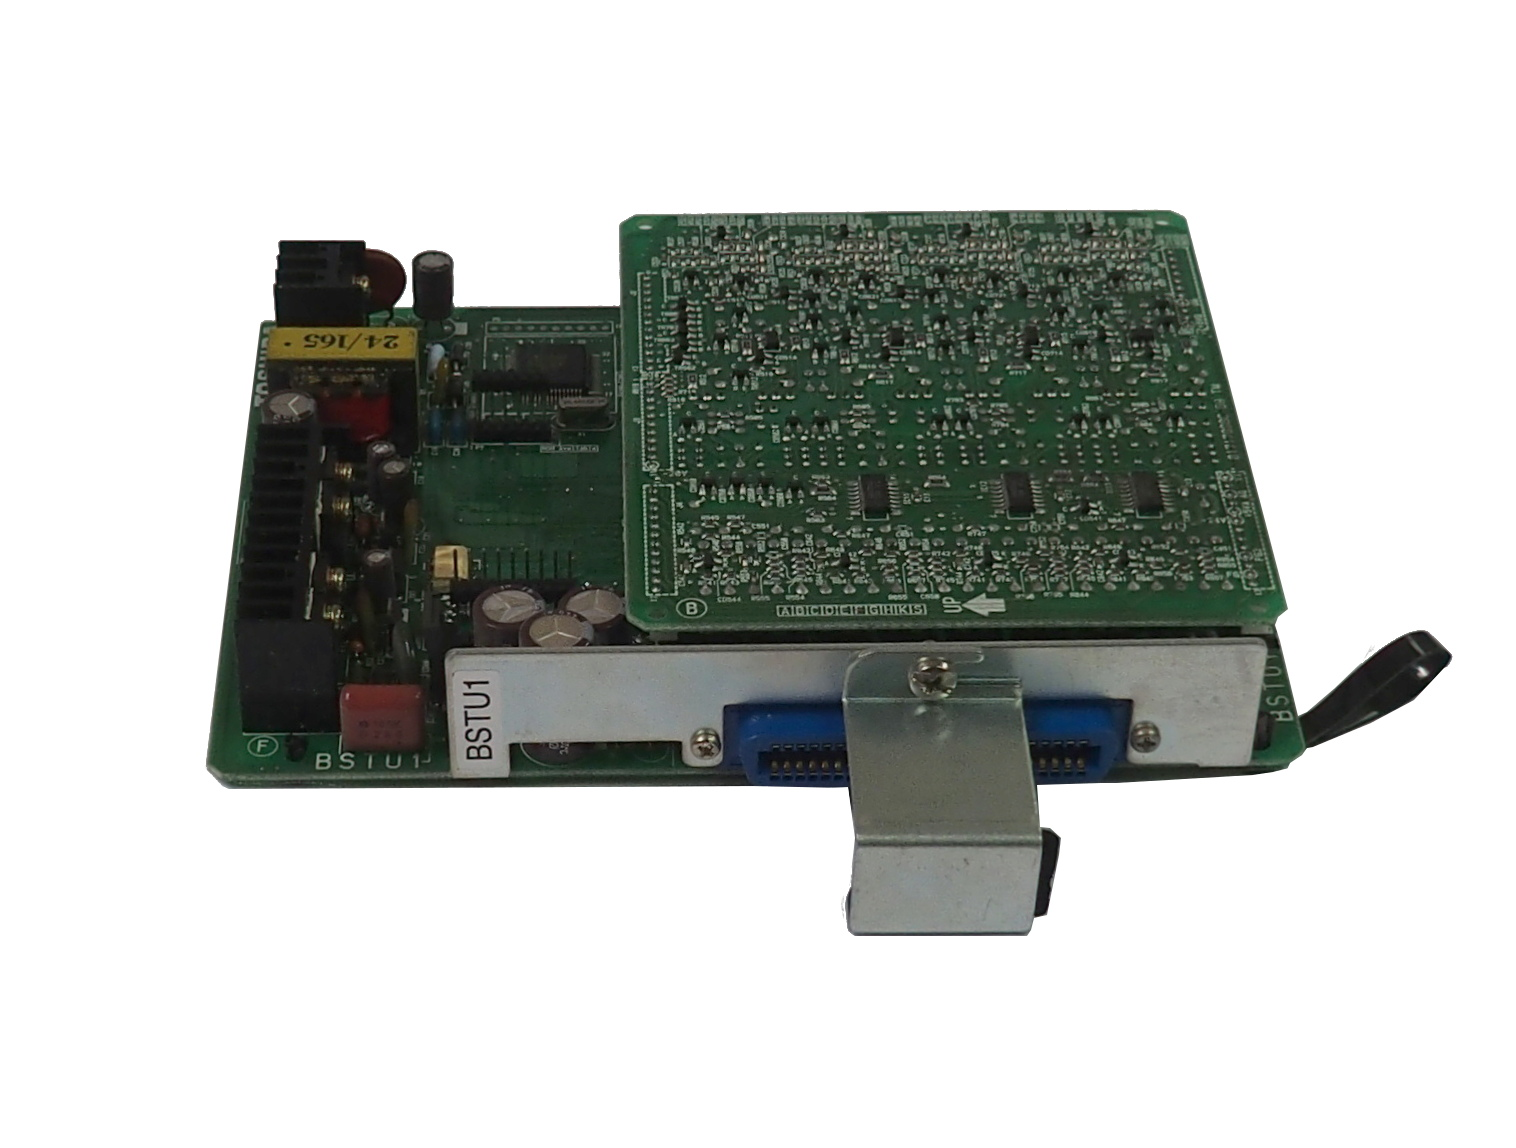 Toshiba BSTU1(F) V.1 CTX100 8-Port Analogue Extension Card